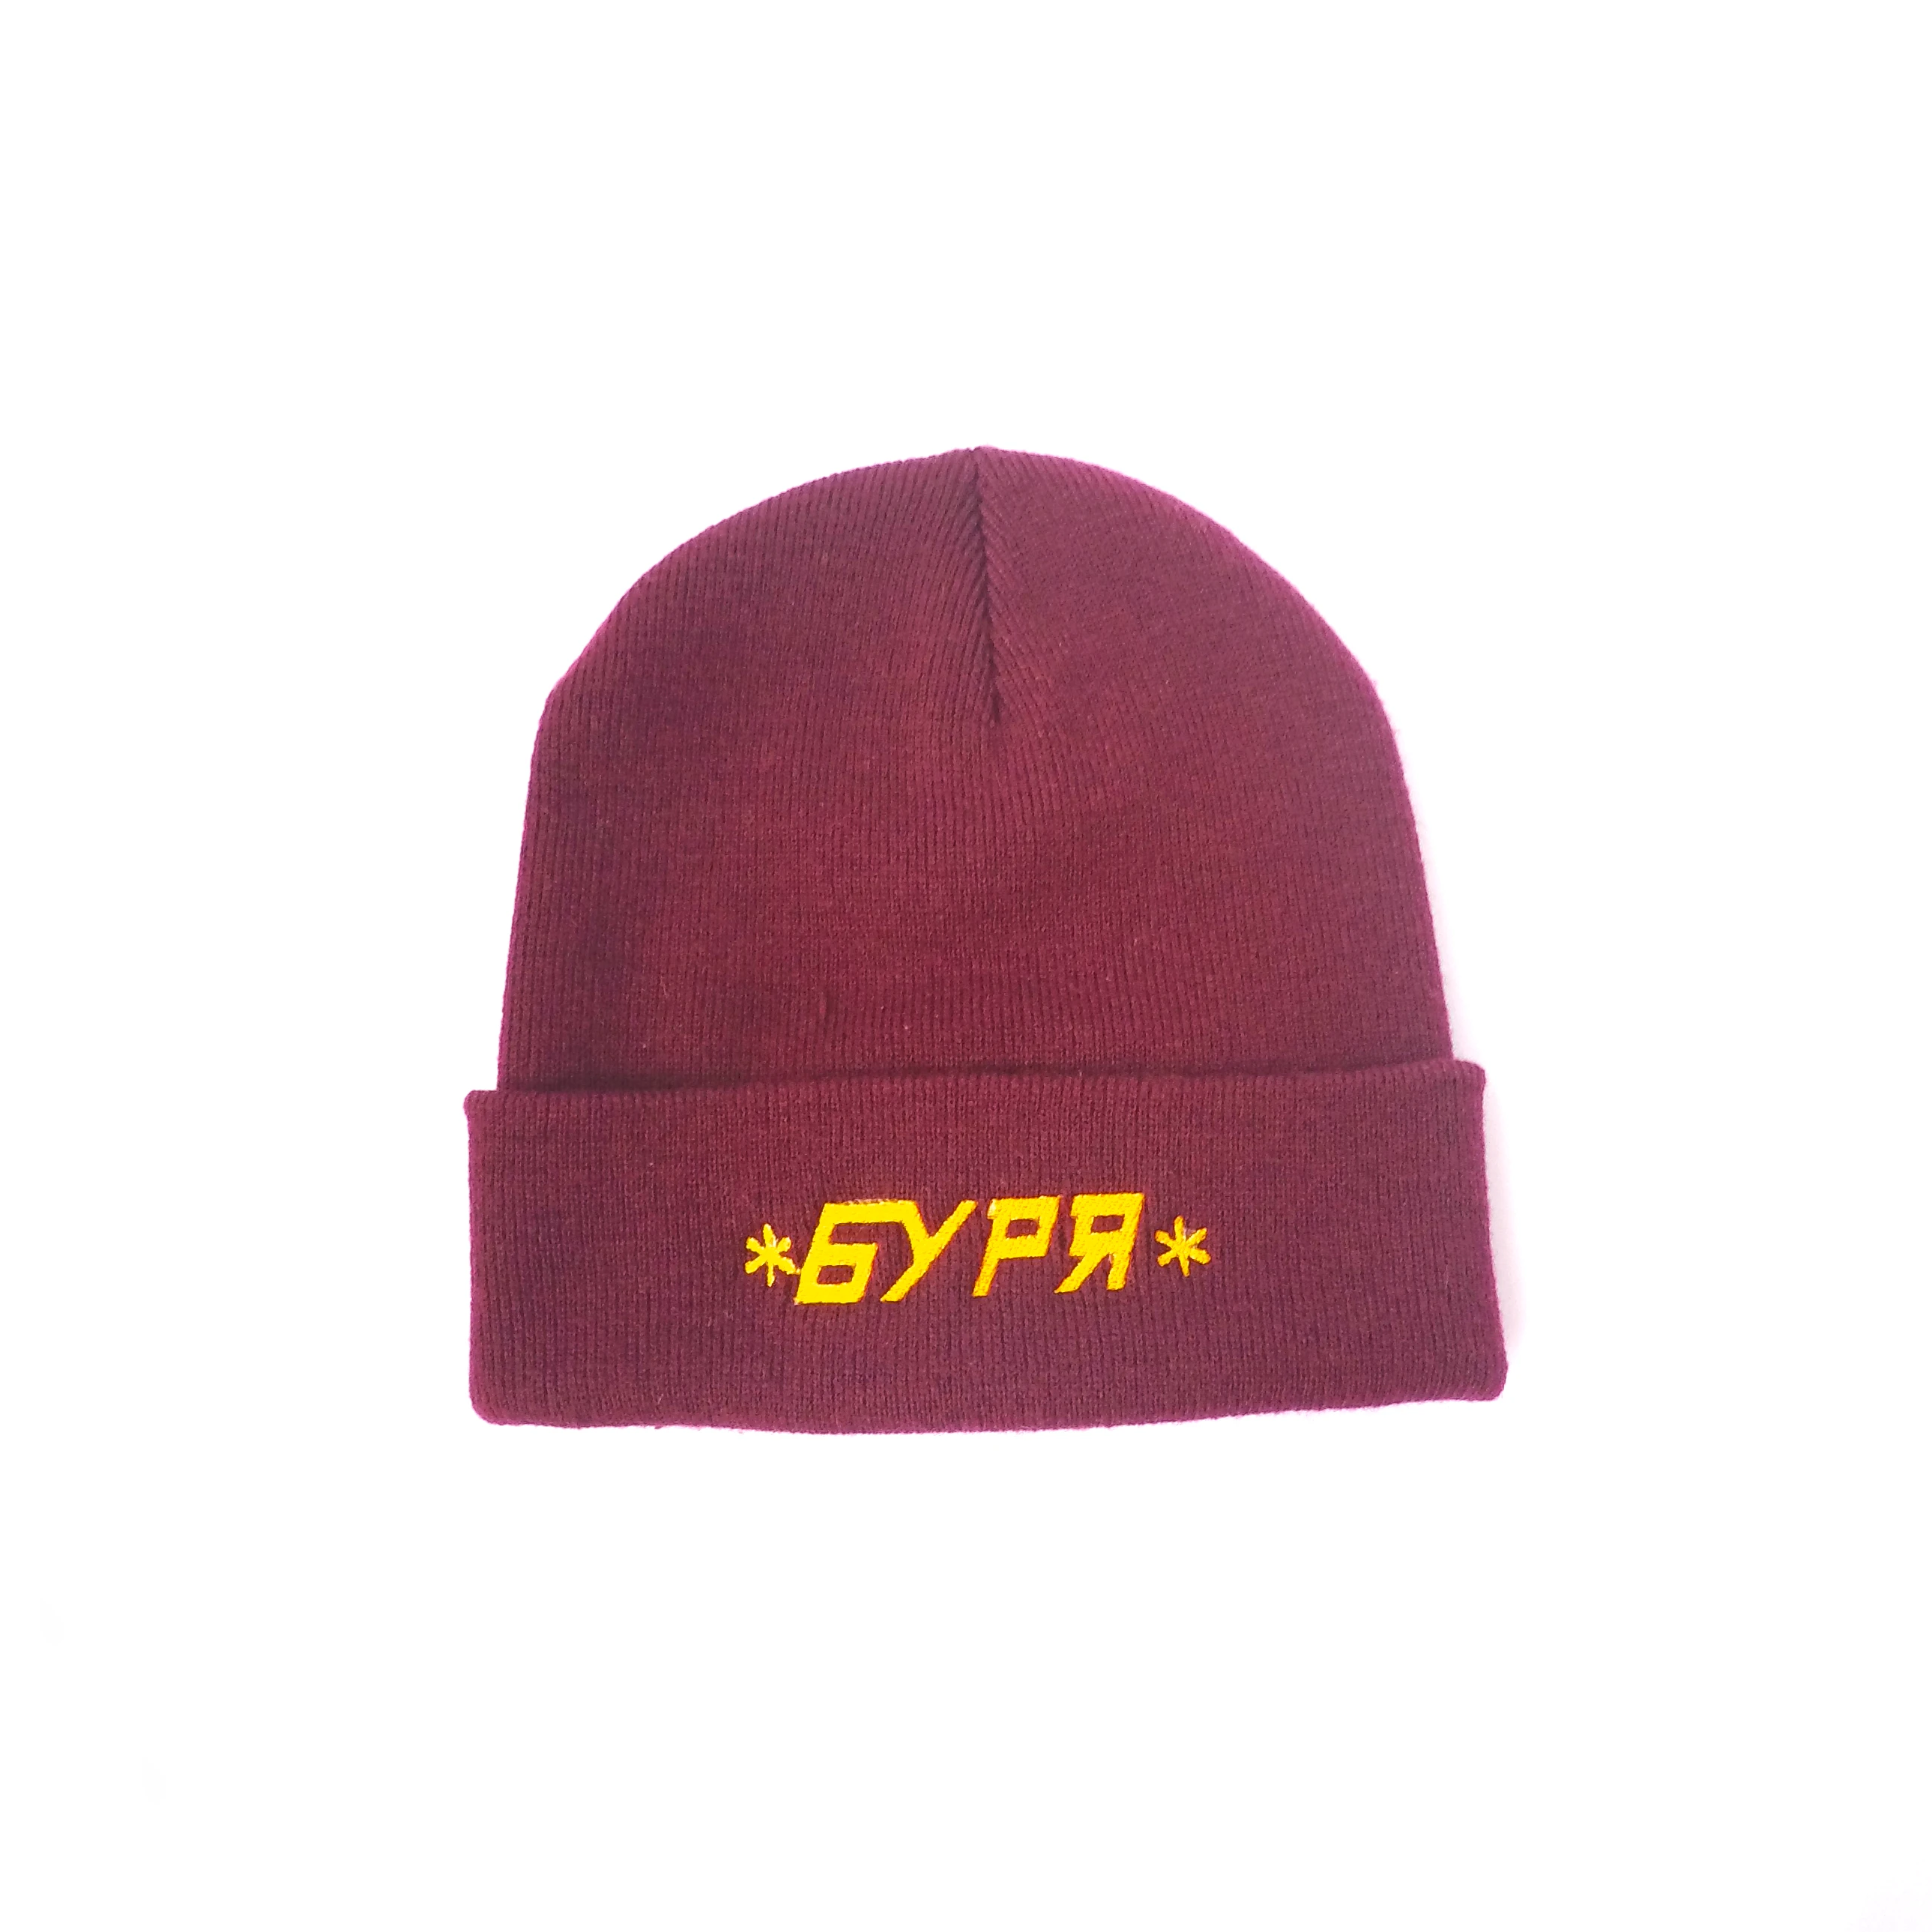 The Maroon Hat